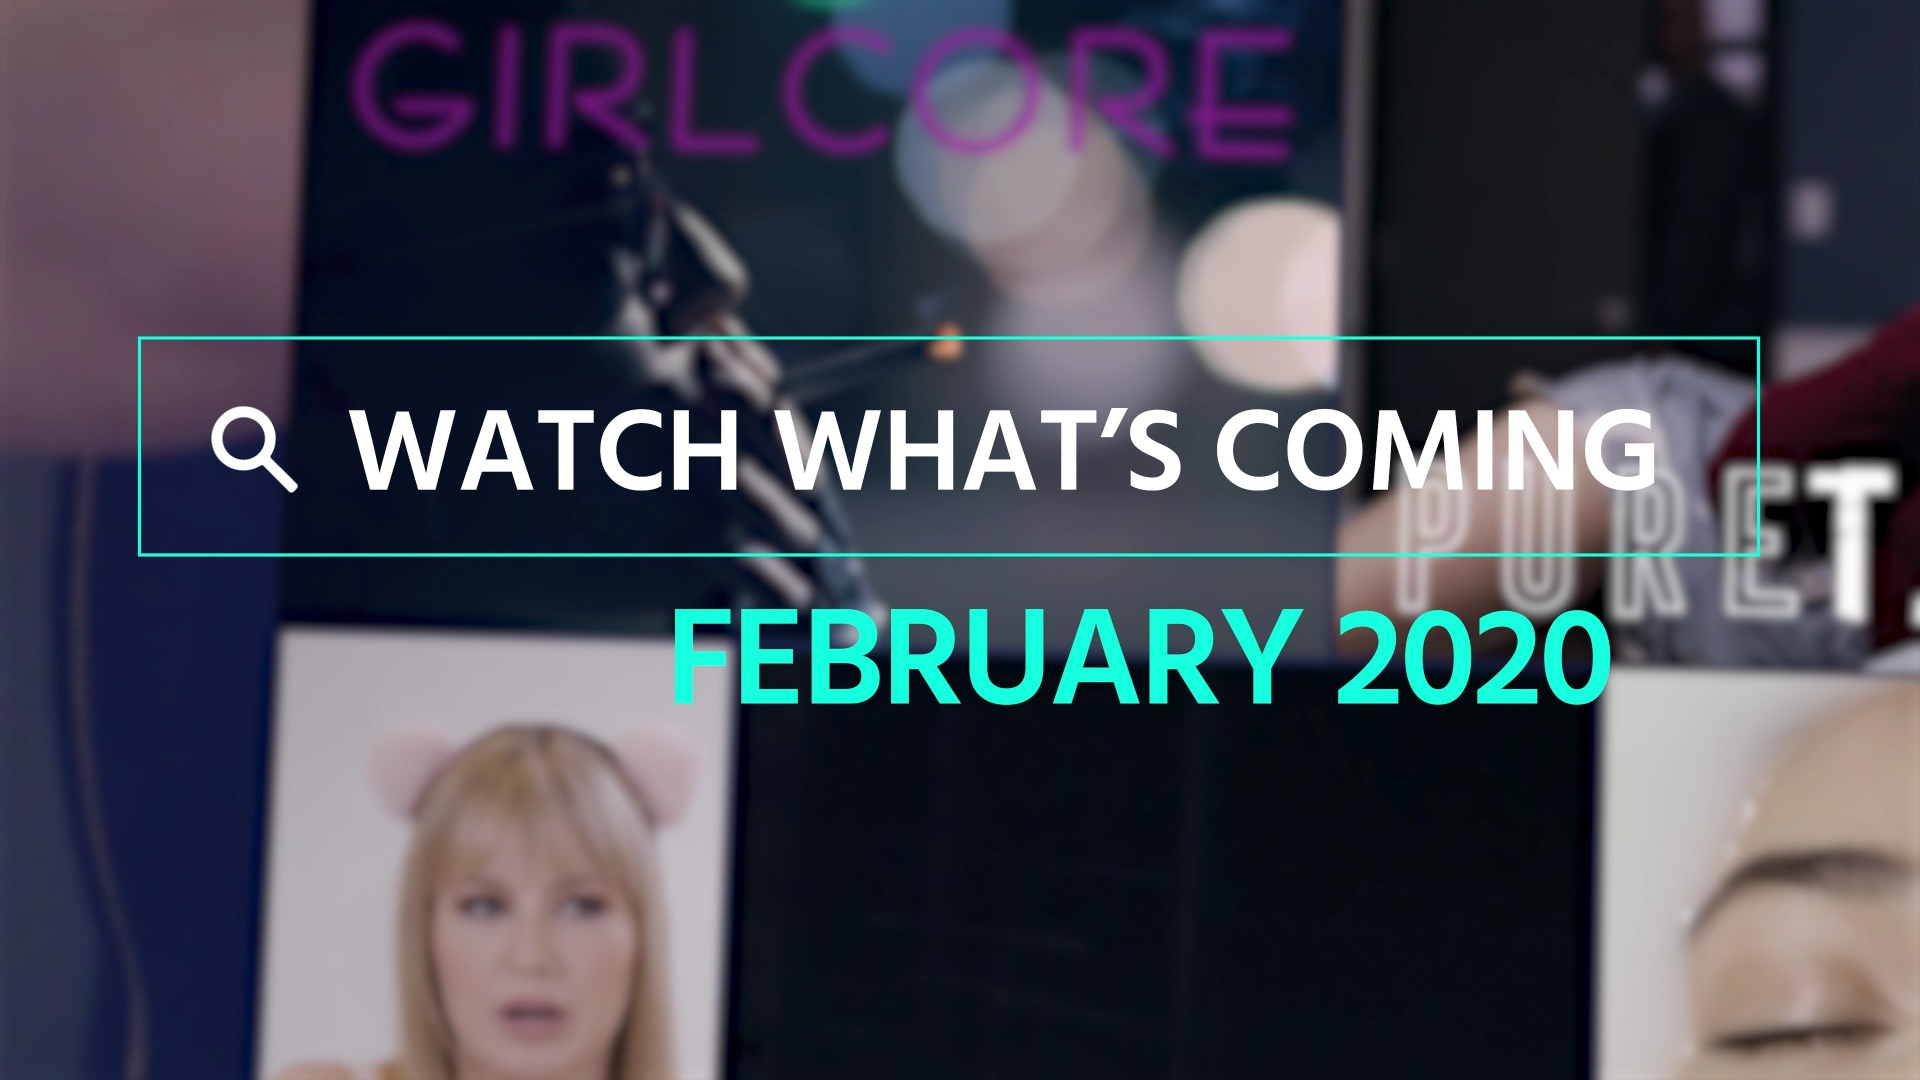 Watch What's Coming | February 2020 - Jane Wilde 1